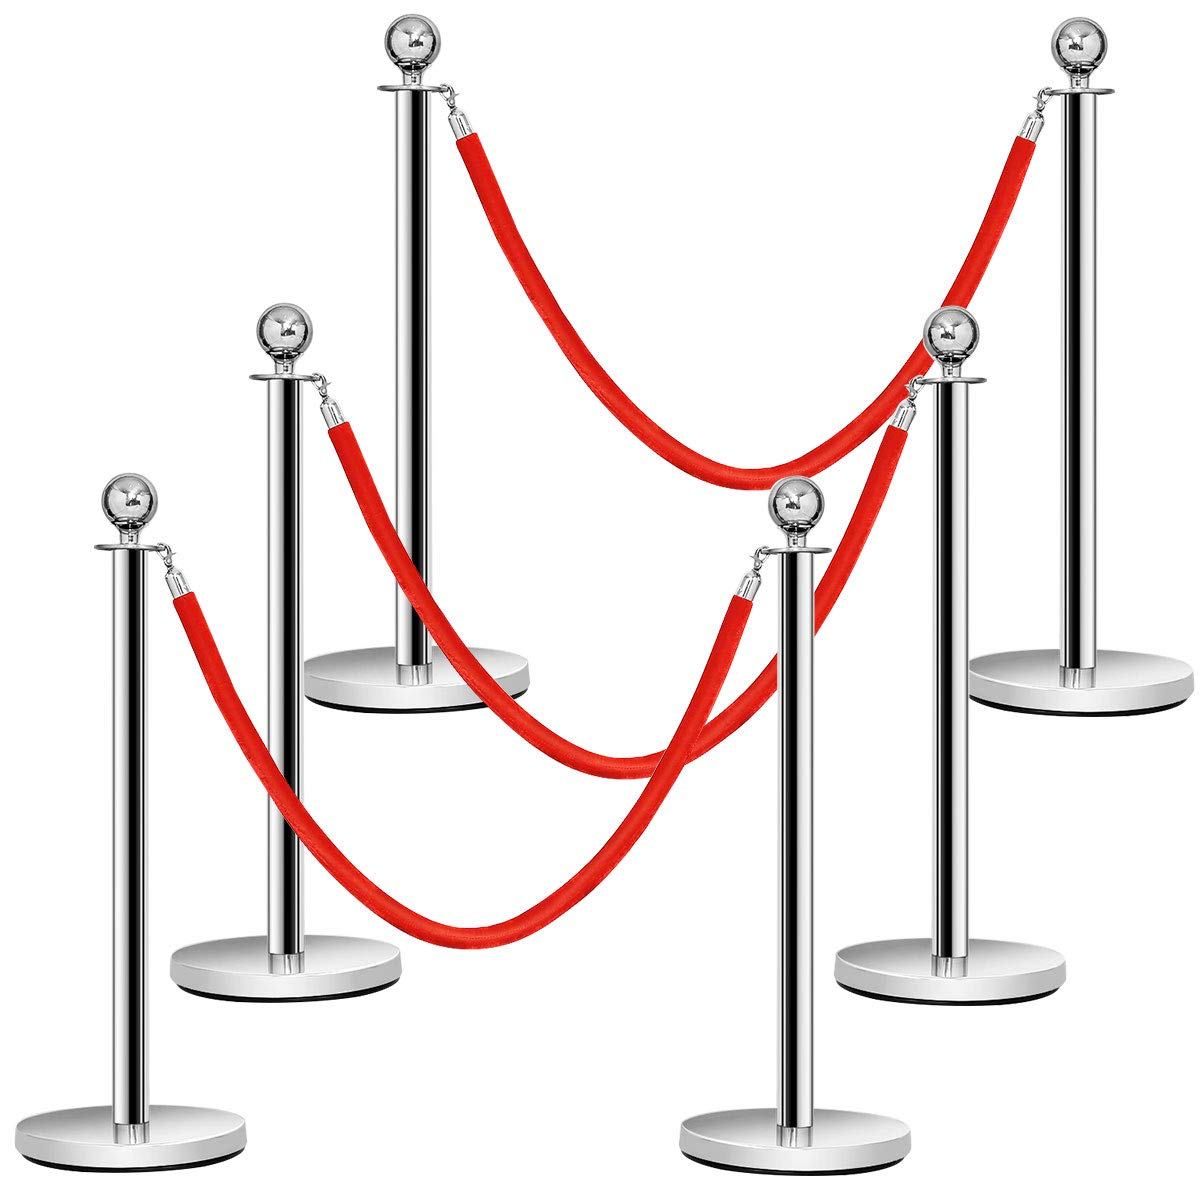 Goplus 6Pcs Stanchion Set, Round Top Polished Stainless Stanchions Posts Queue Pole with 5Ft Red Velvet Rope, Crowd Control Barrier by Goplus